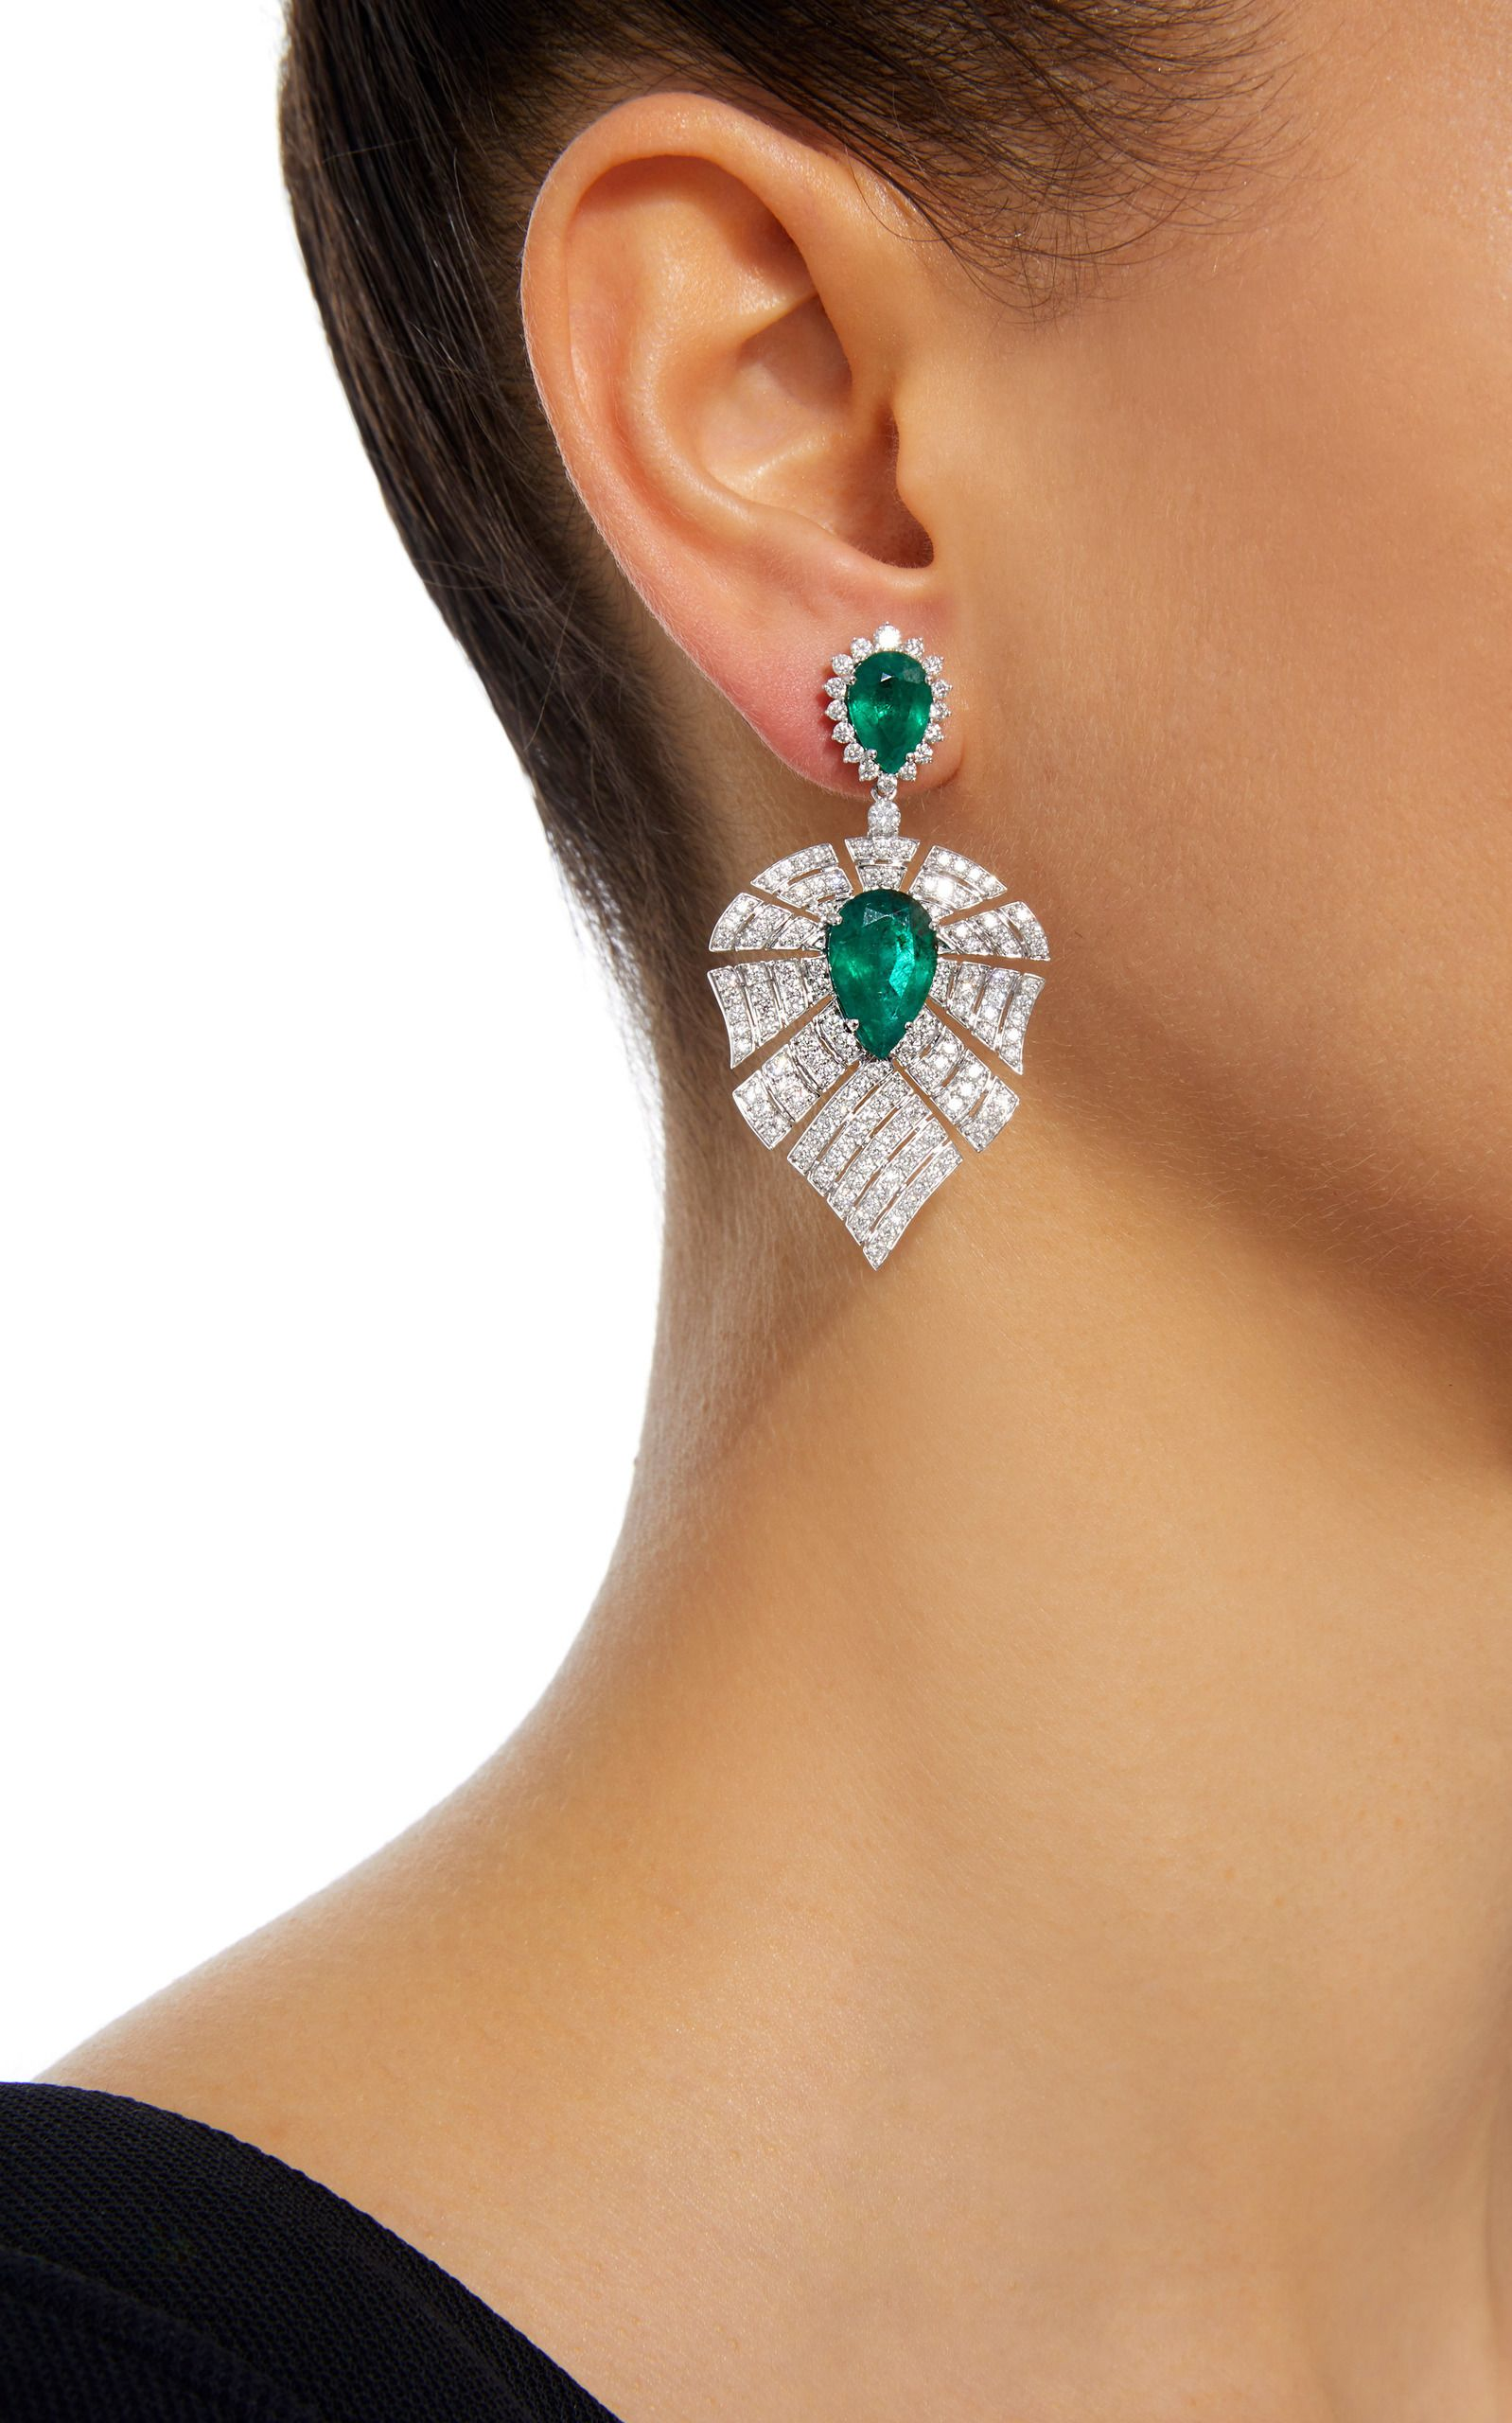 Hueb labyrinth k white gold diamond and emerald earrings